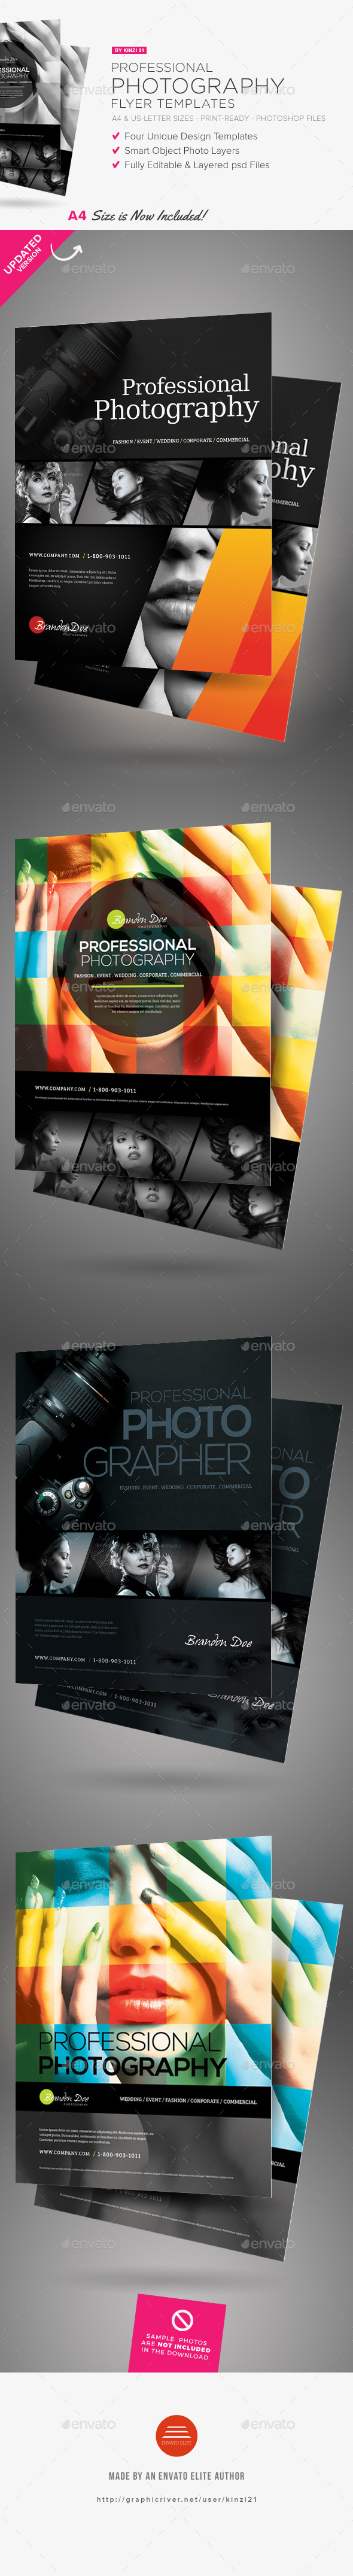 Professional Photography Flyers - Corporate Flyers